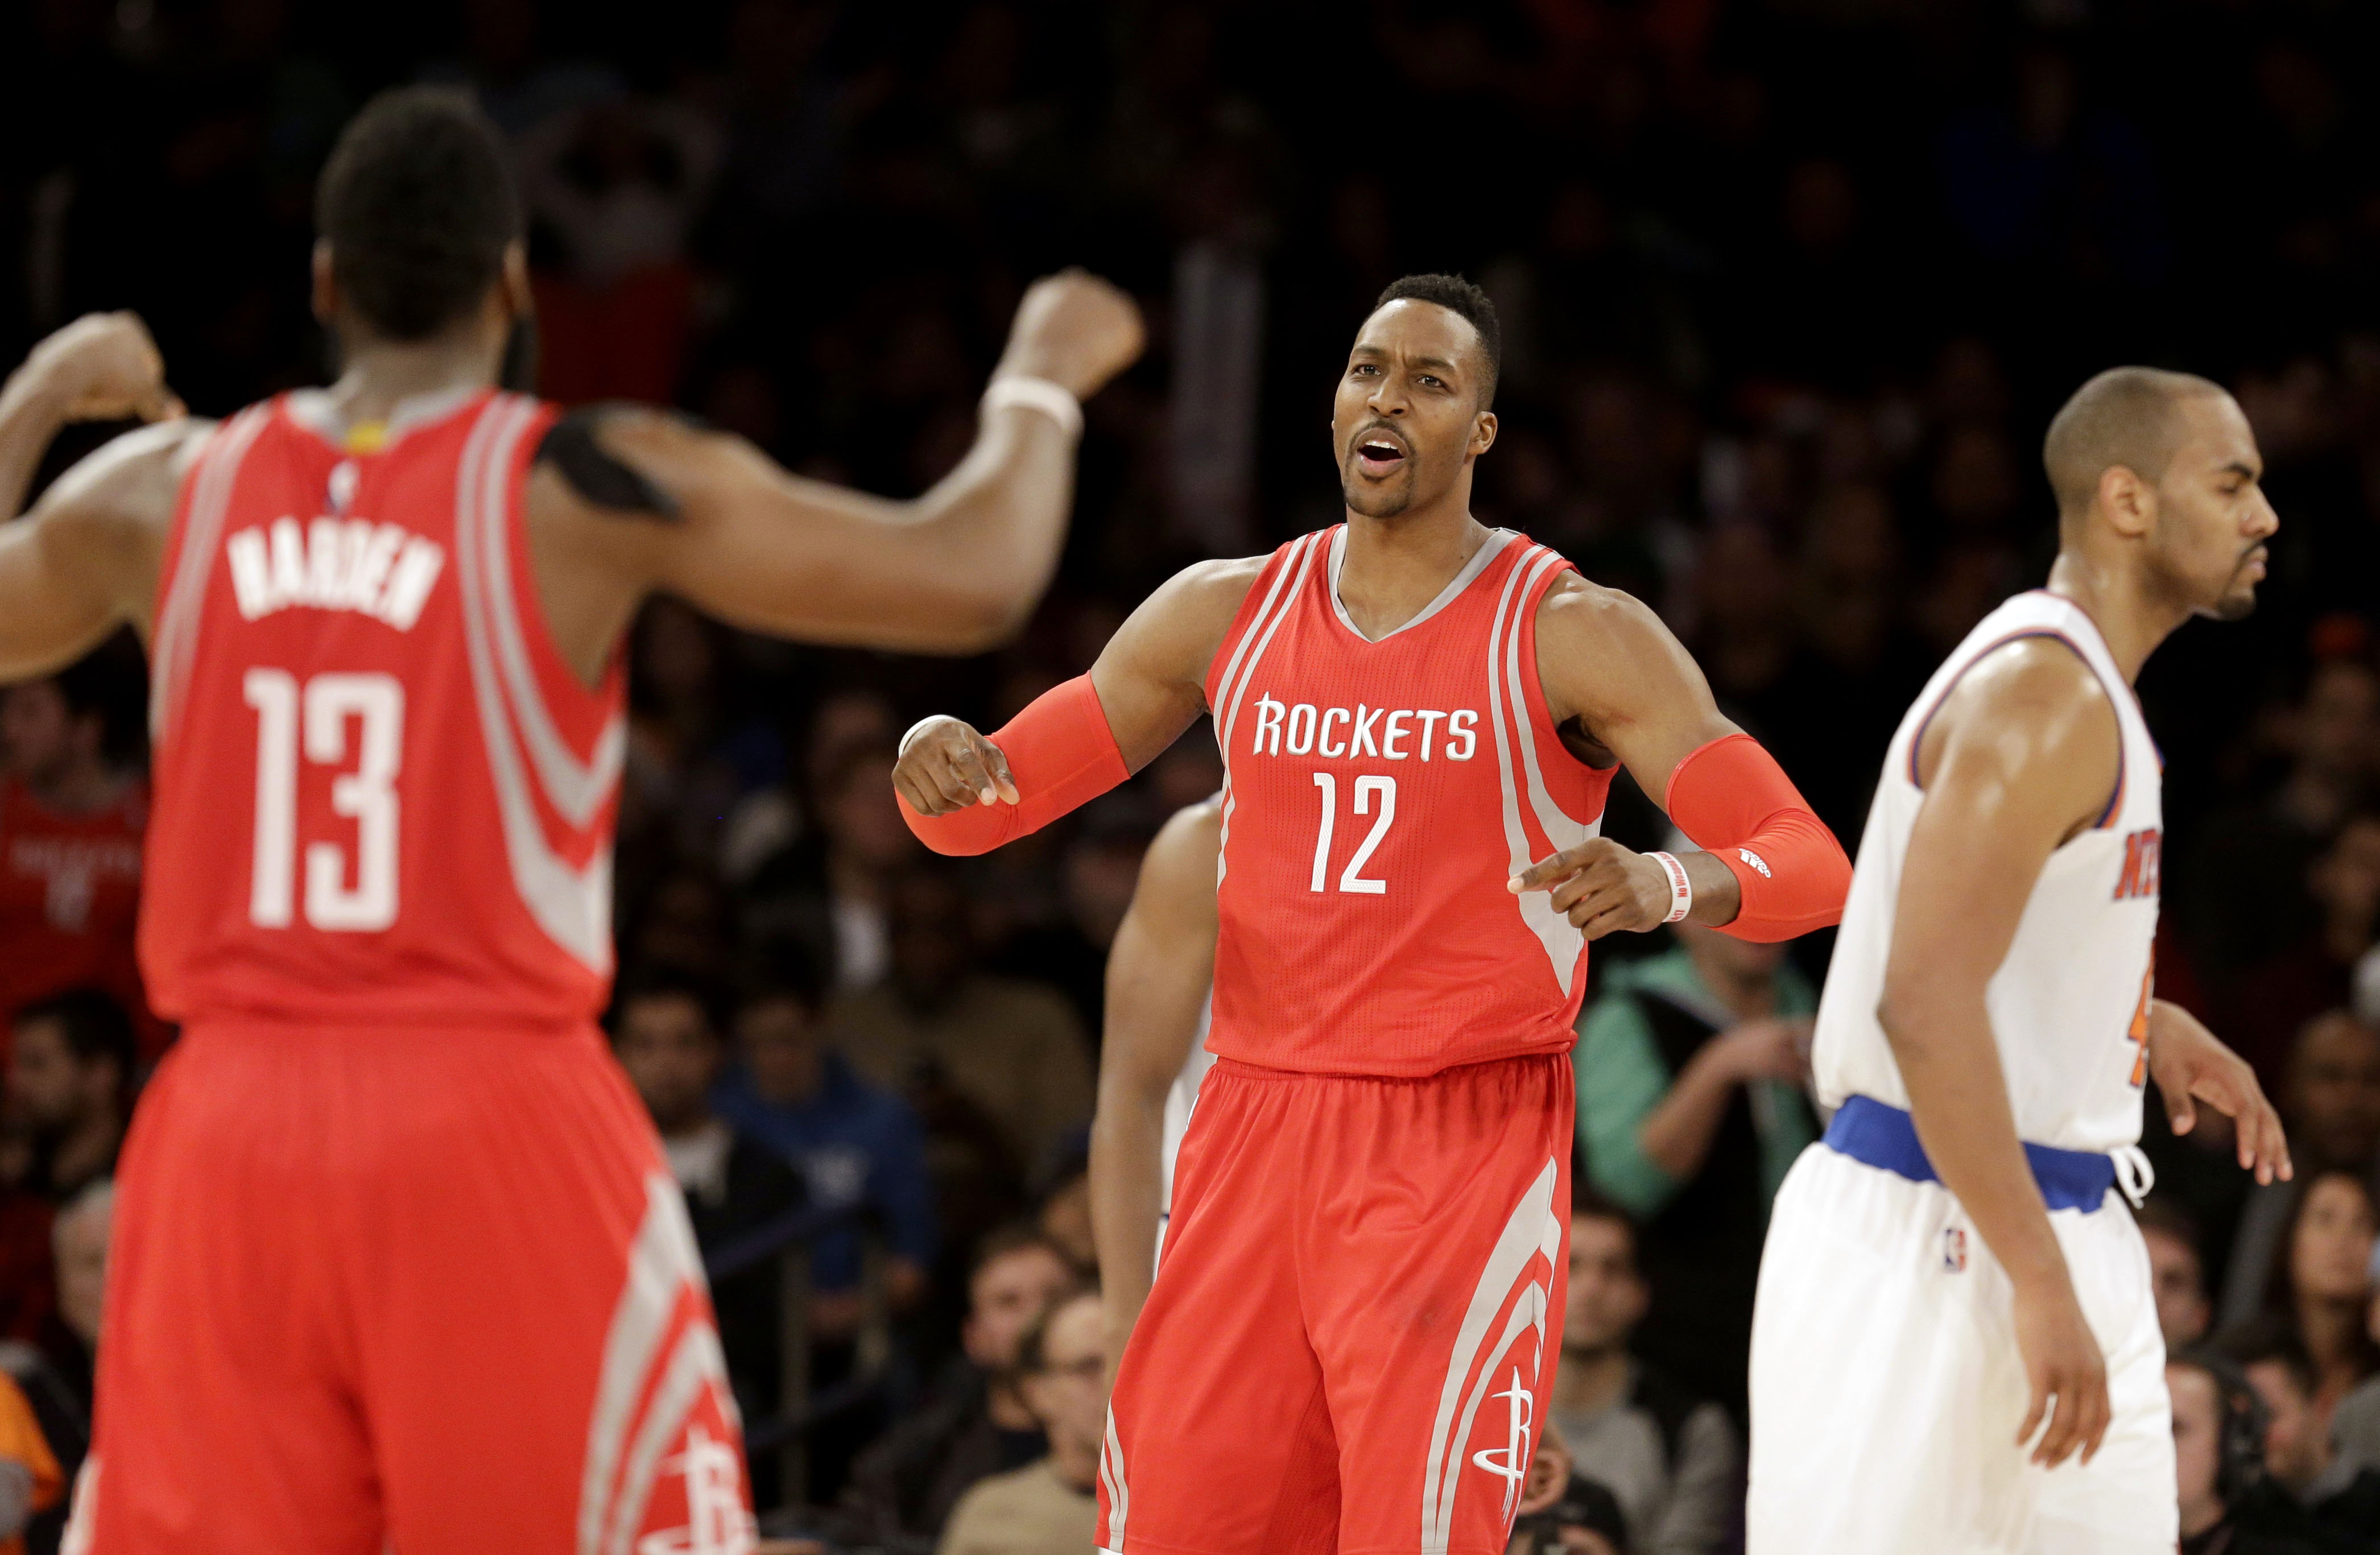 Houston Rockets' Dwight Howard, center, celebrates with James Harden, left, while New York Knicks' Arron Afflalo walks away during the overtime period of the NBA basketball game against the New York Knicks, Sunday, Nov. 29, 2015, in New York. (AP Photo/Se